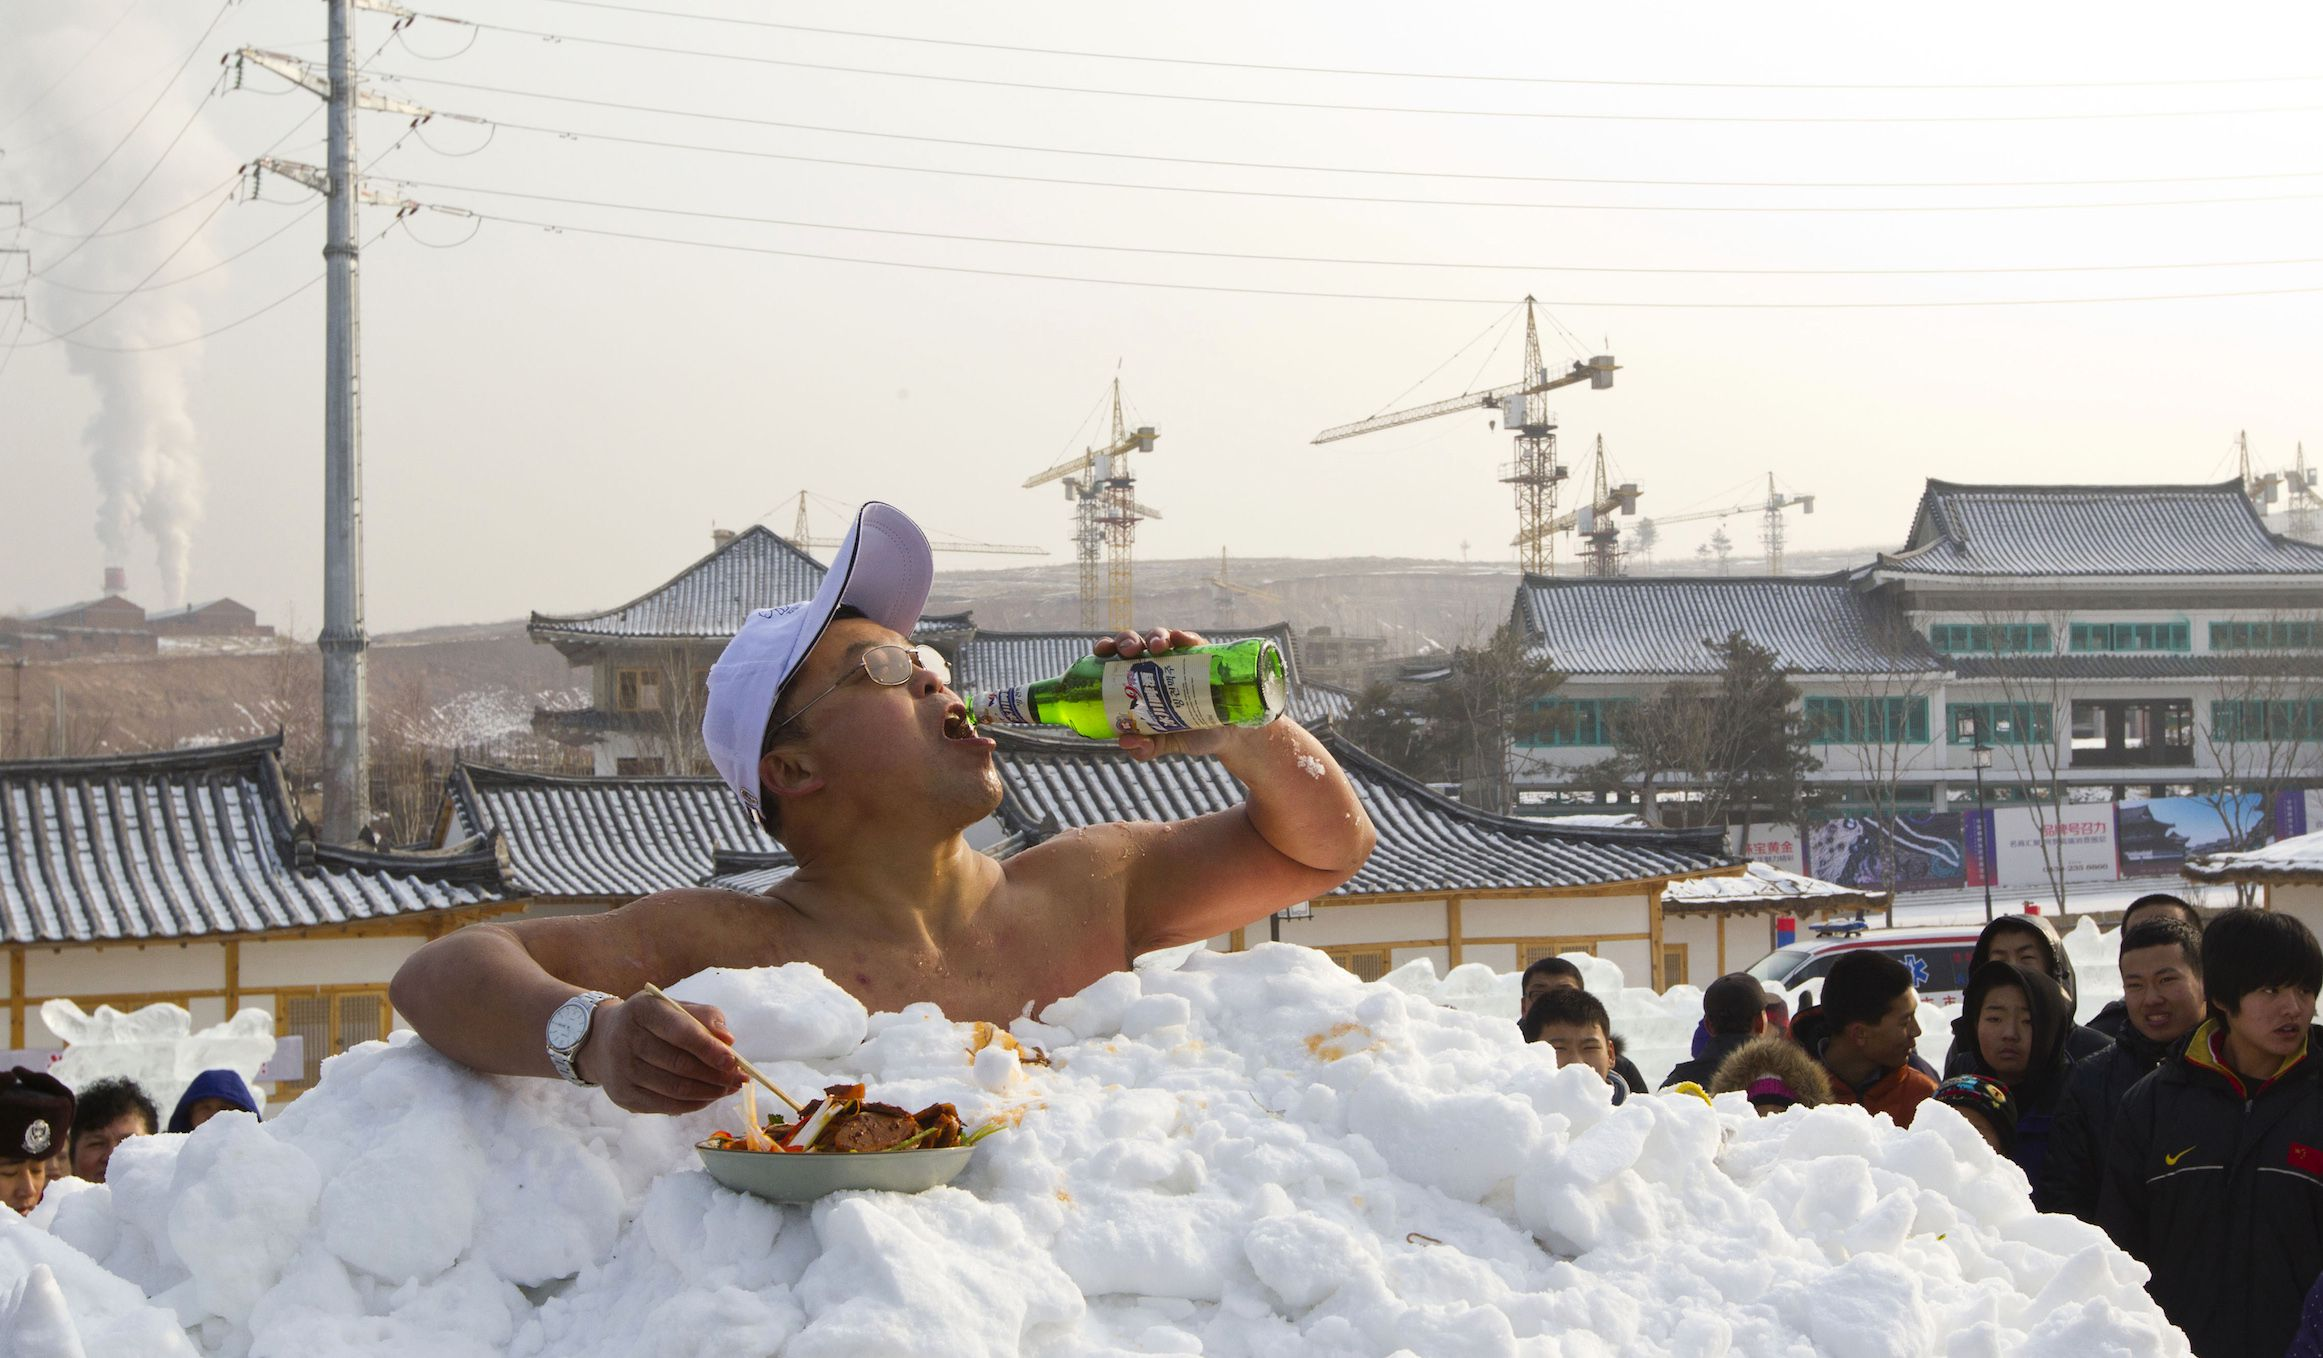 Jin Songhao drinks beer as he sits in snow during a cold endurance performance in Yanji, Jilin province, January 12, 2013. Jin set the Guinness record for the longest time spent in direct full body contact with snow on January 17, 2011 with a time of 46 minutes and seven seconds, local media reported. Picture taken January 12, 2013. REUTERS/Stringer (CHINA - Tags: SOCIETY ENVIRONMENT) CHINA OUT. NO COMMERCIAL OR EDITORIAL SALES IN CHINA - RTR3CGWW